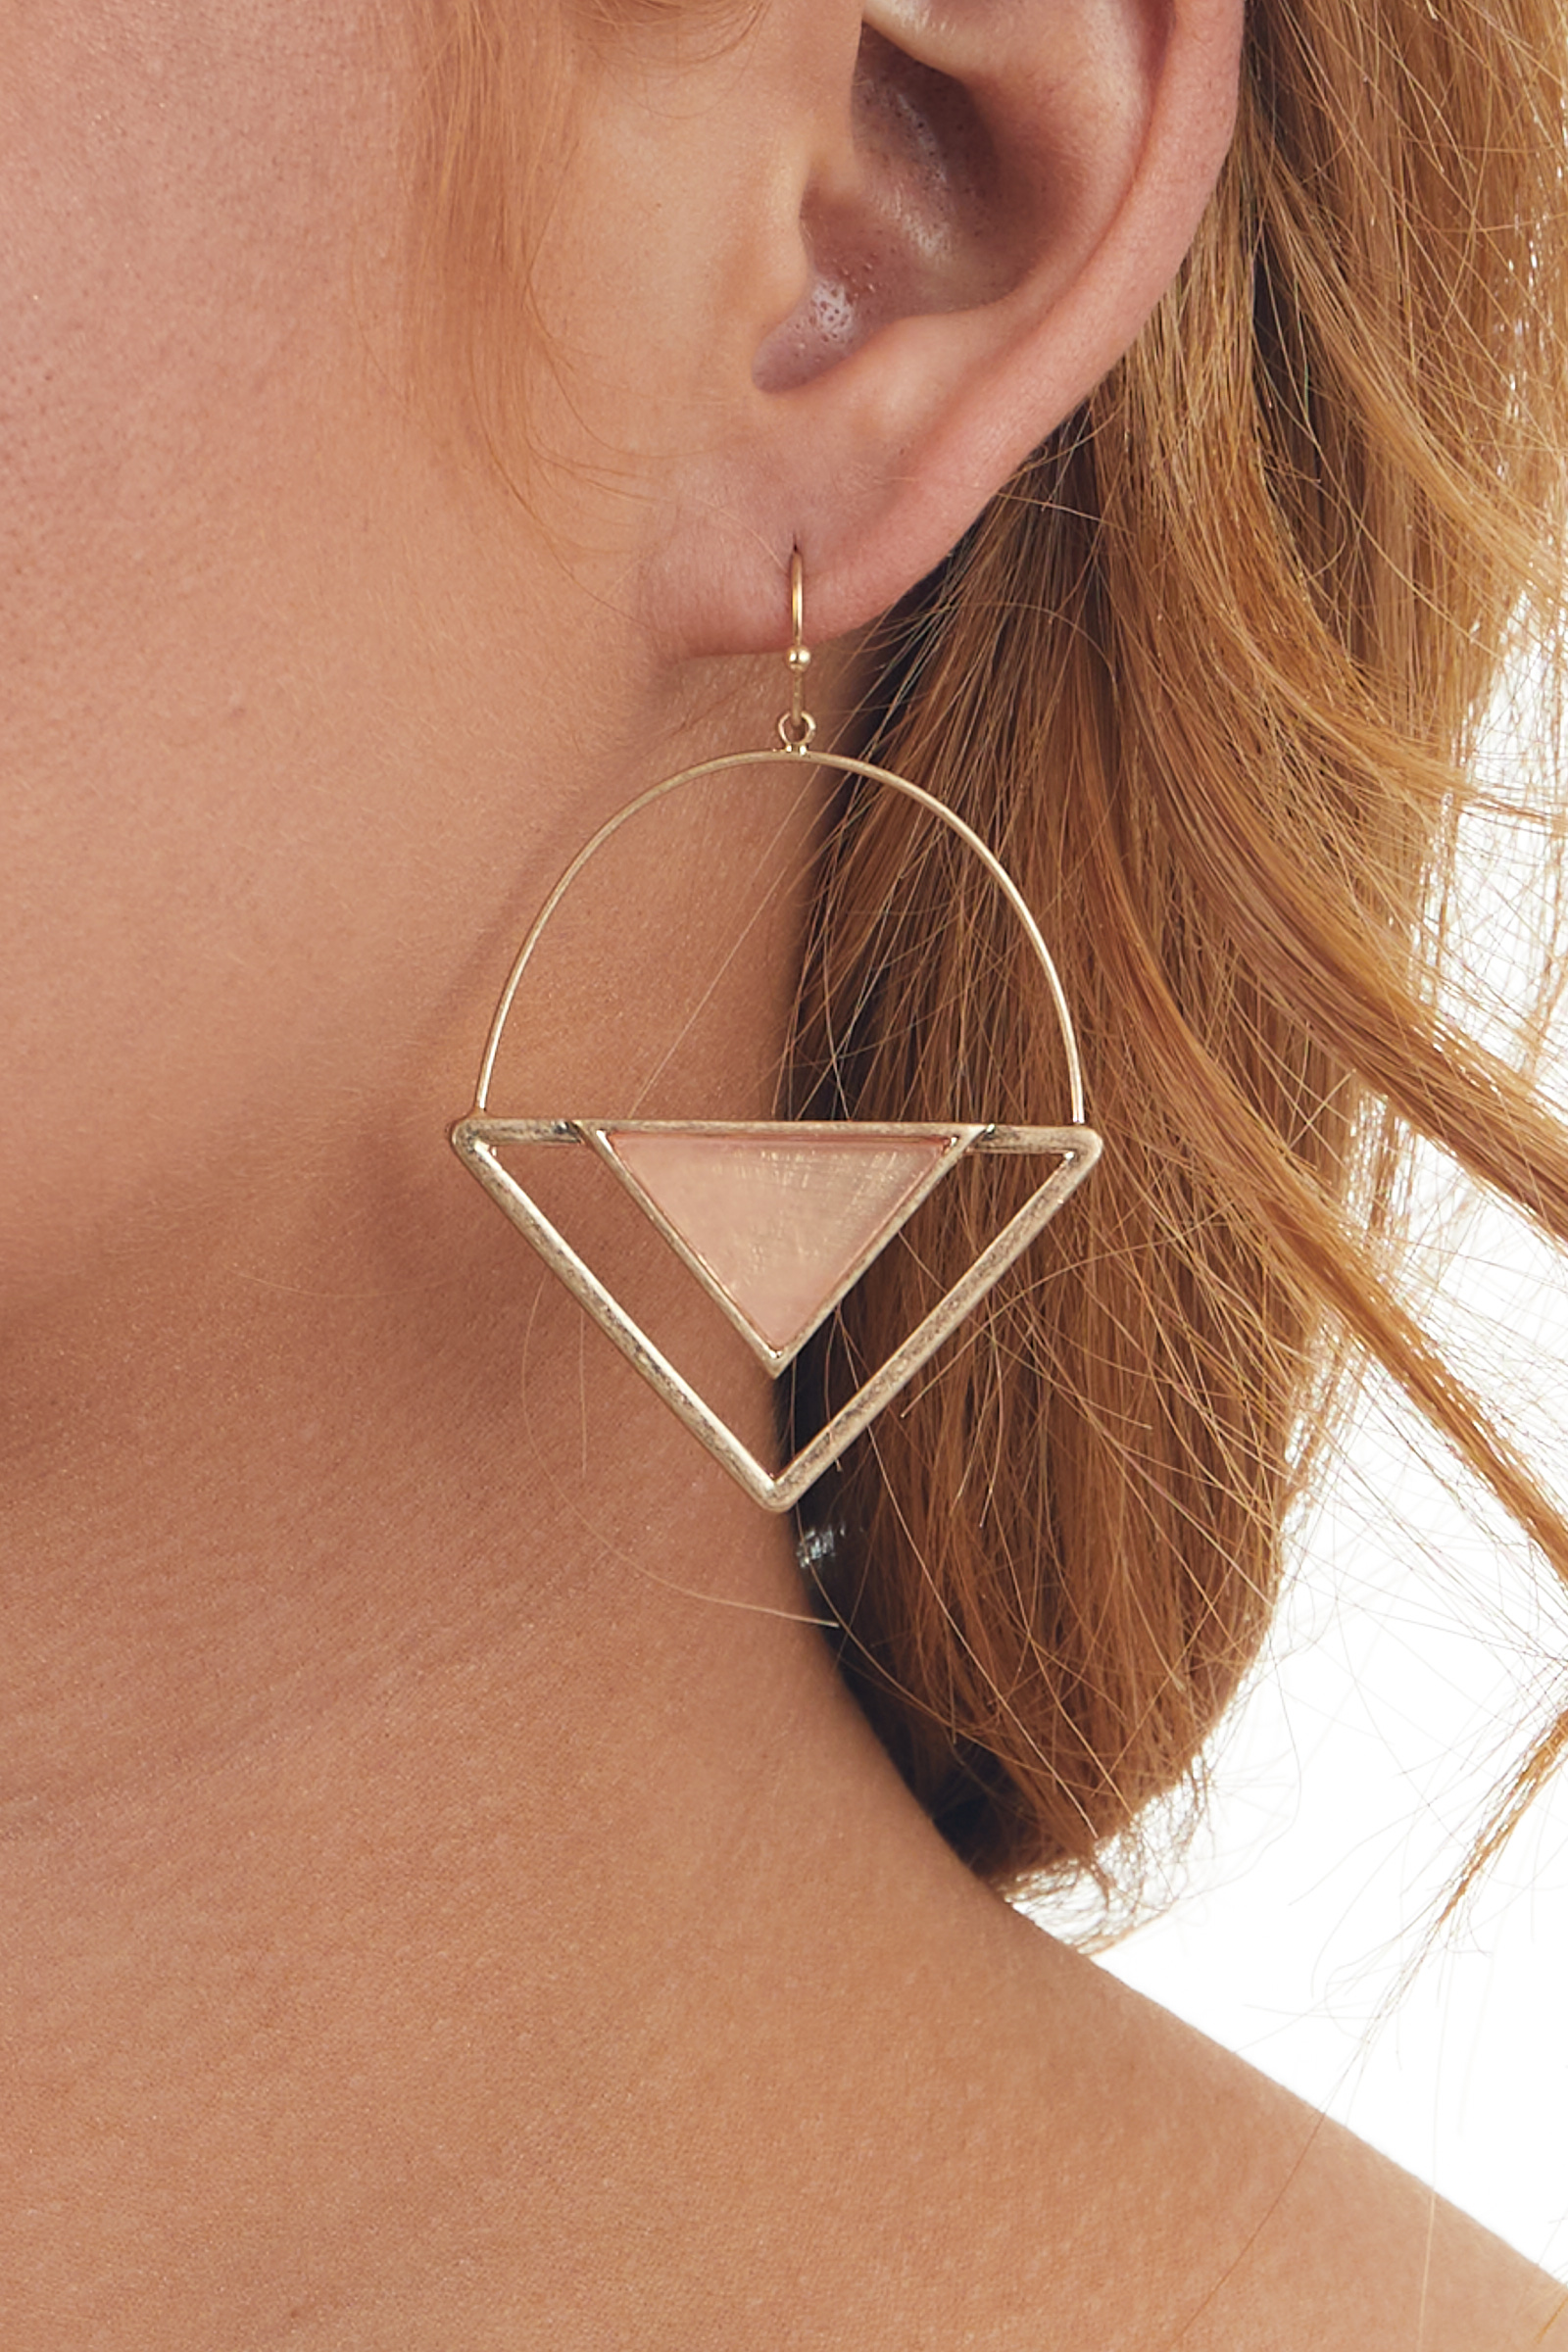 Gold Triangle Dangle Earrings with Peach Stone